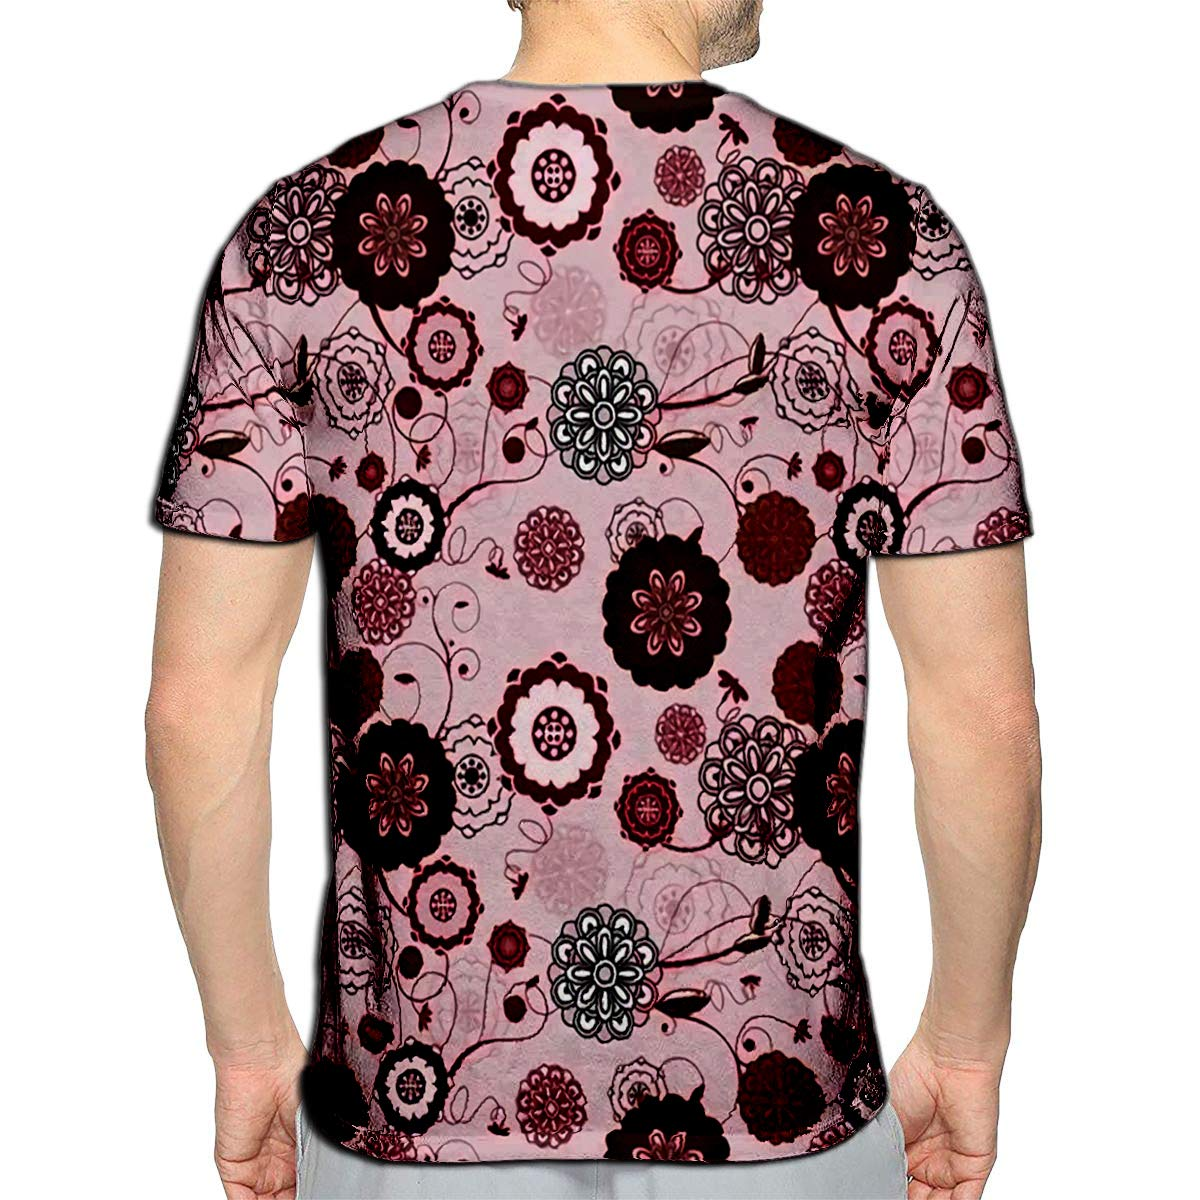 3D Printed T-Shirts Sakura Flower Blossom Style Banner Cute Doodle Japanese Cher